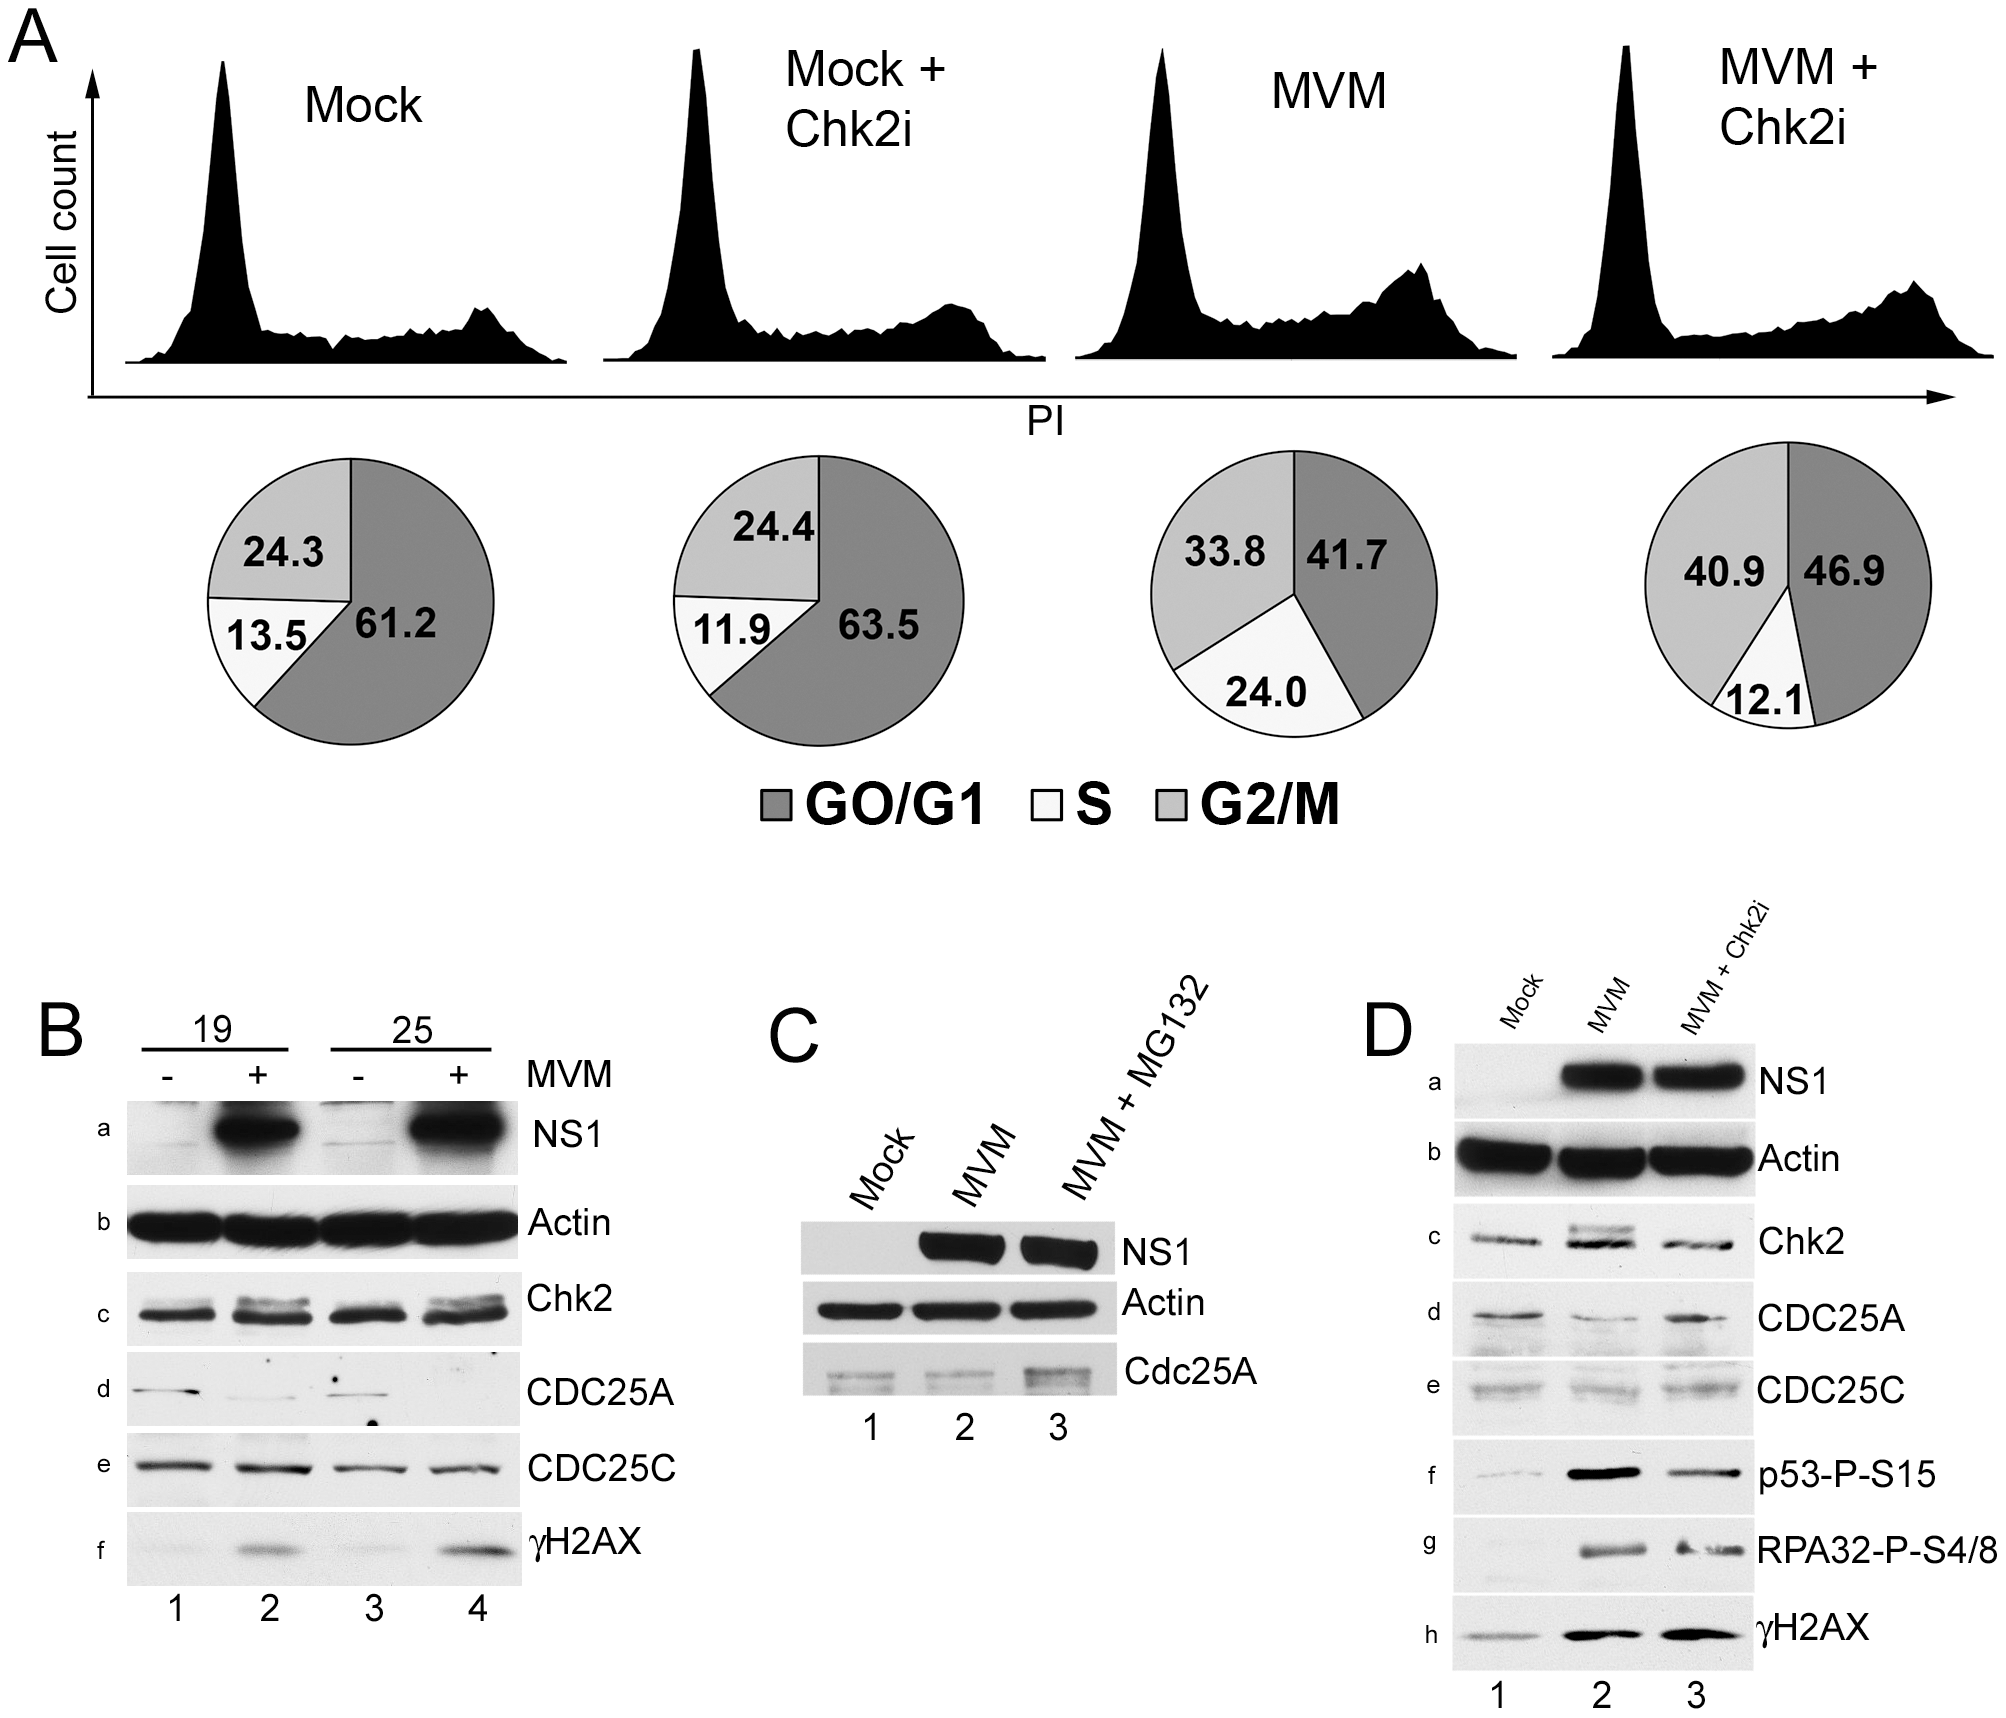 Chk2 activation leads to a transient S-phase accumulation mediated by loss of CDC25A.